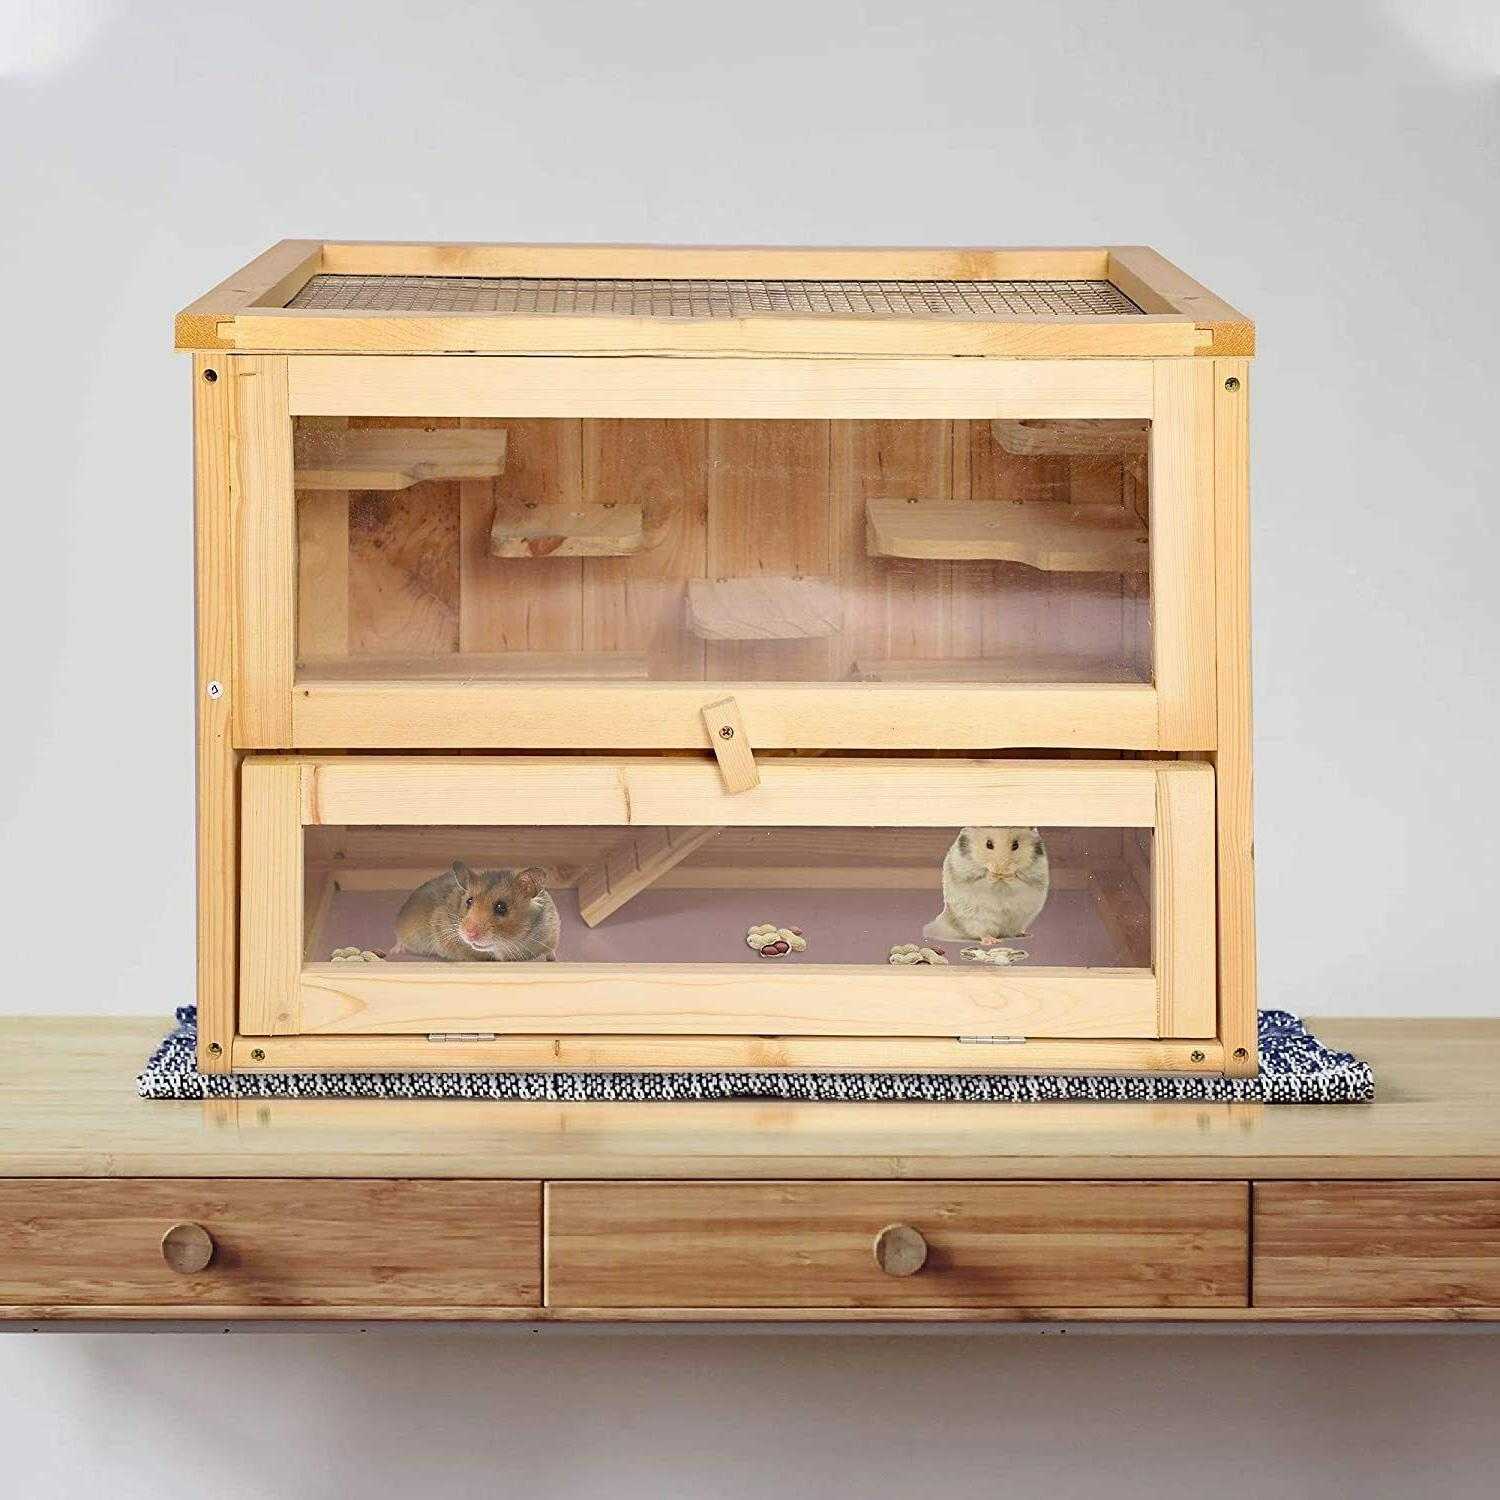 2 level wood hamster cage small animal